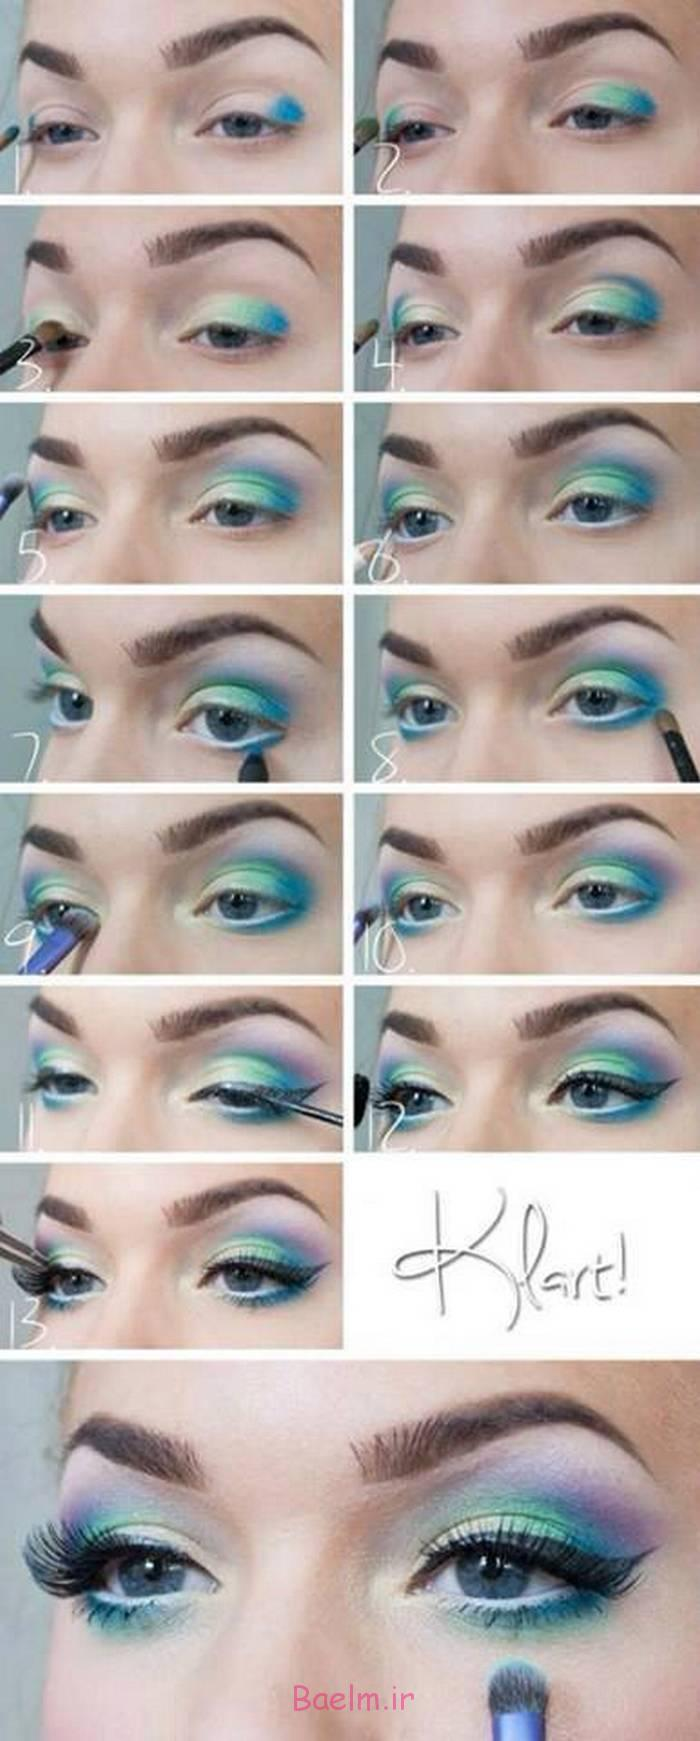 Top 20 Amazing Eye Makeup Tutorials You Must See 13 Top 20 Amazing Eye Makeup Tutorials You Must See